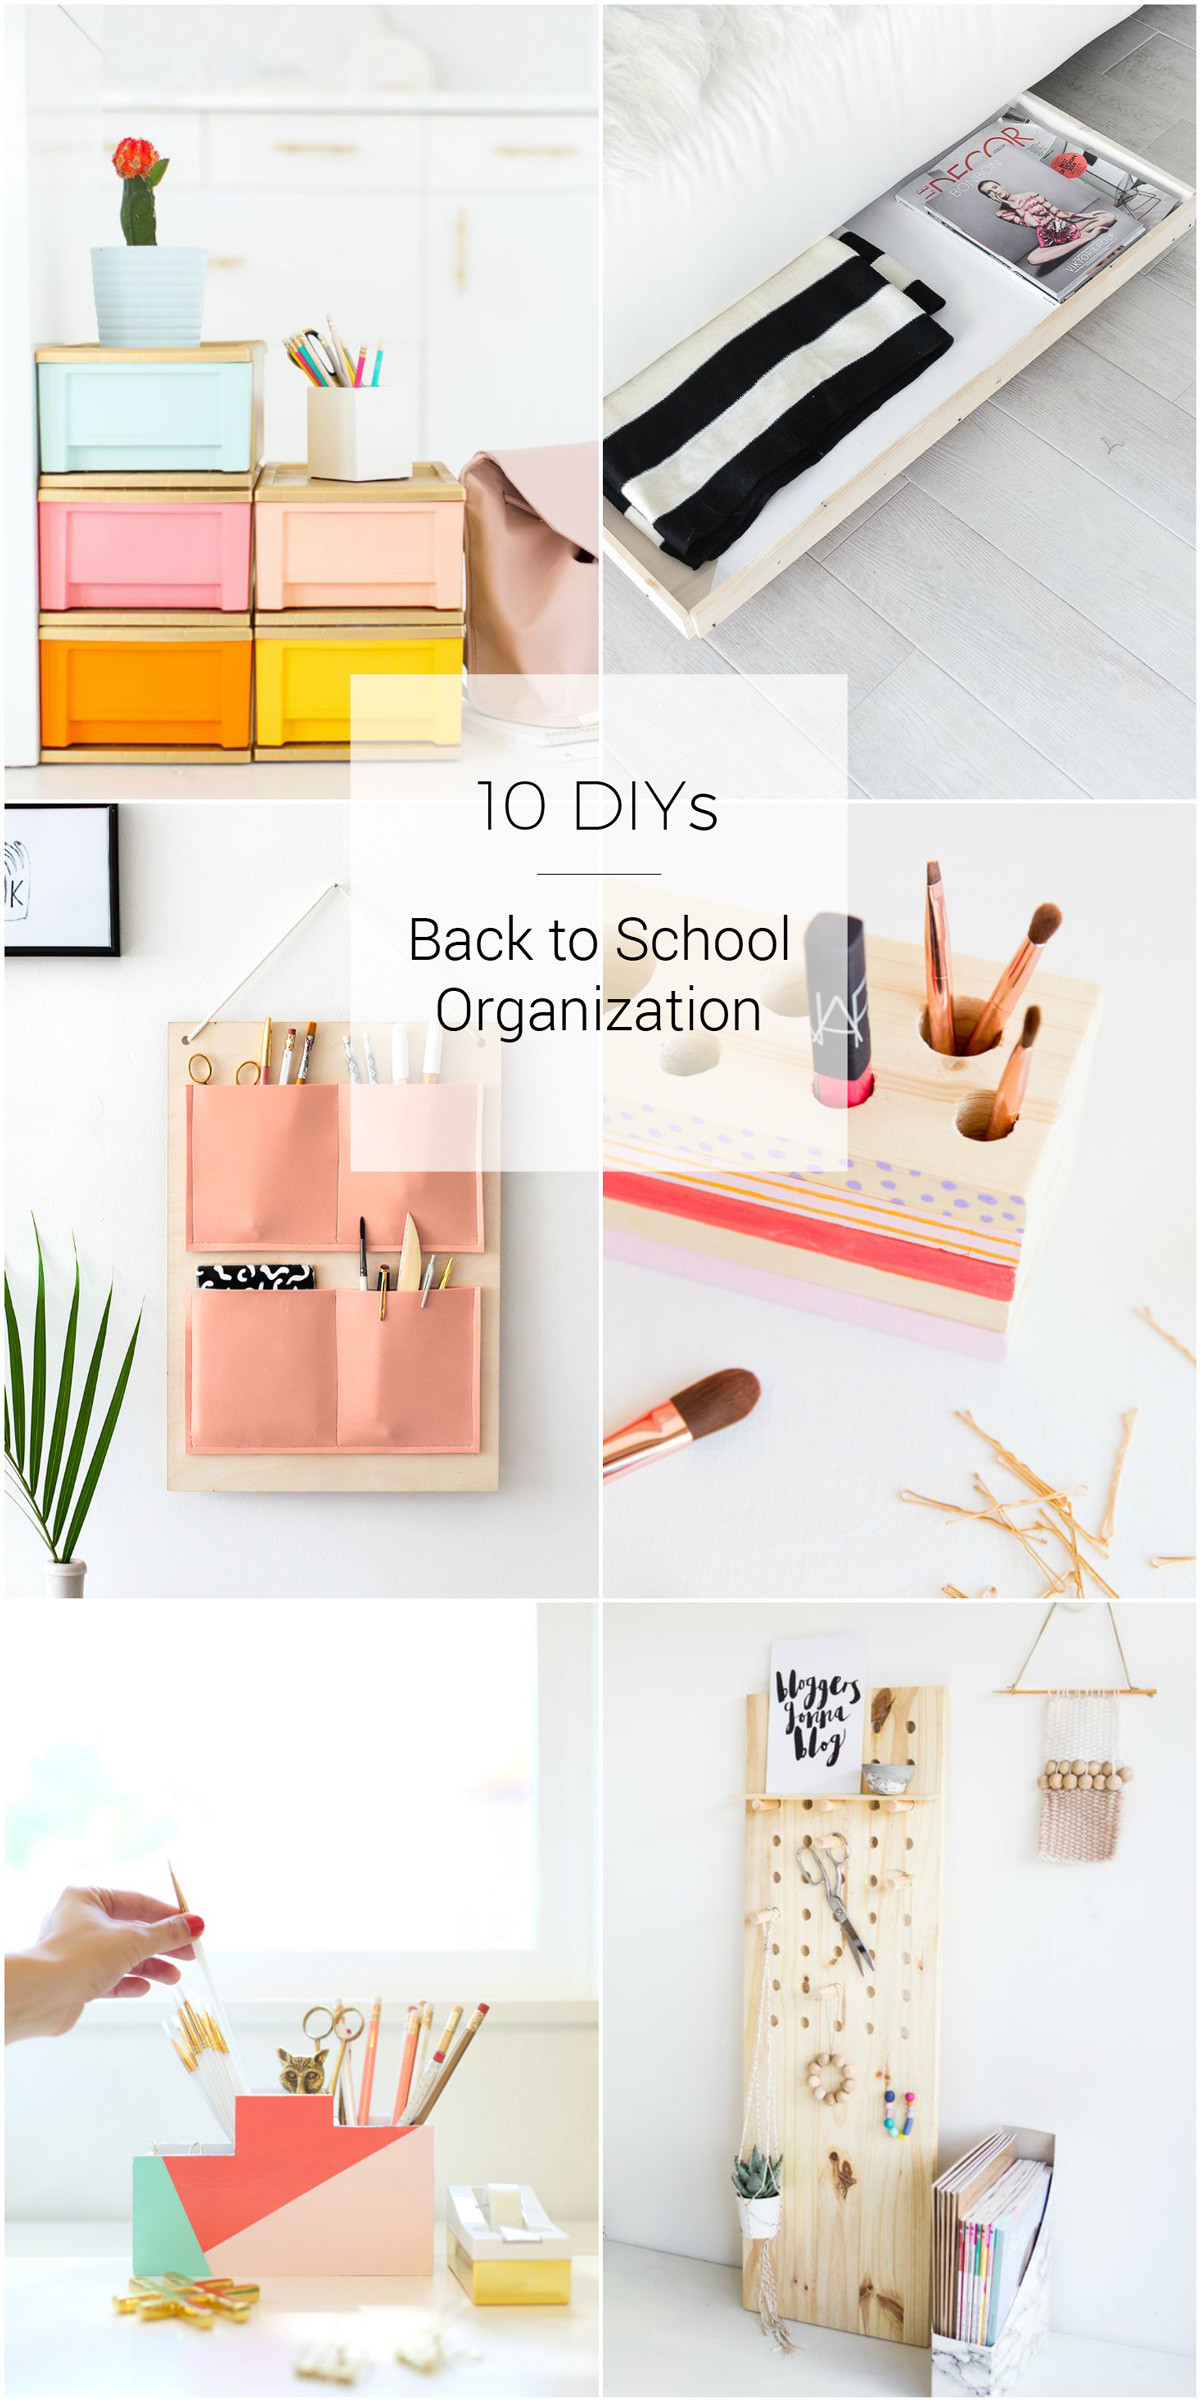 Best ideas about DIY Back To School Organization . Save or Pin 10 DIY Ideas for Back to School Organization Now.